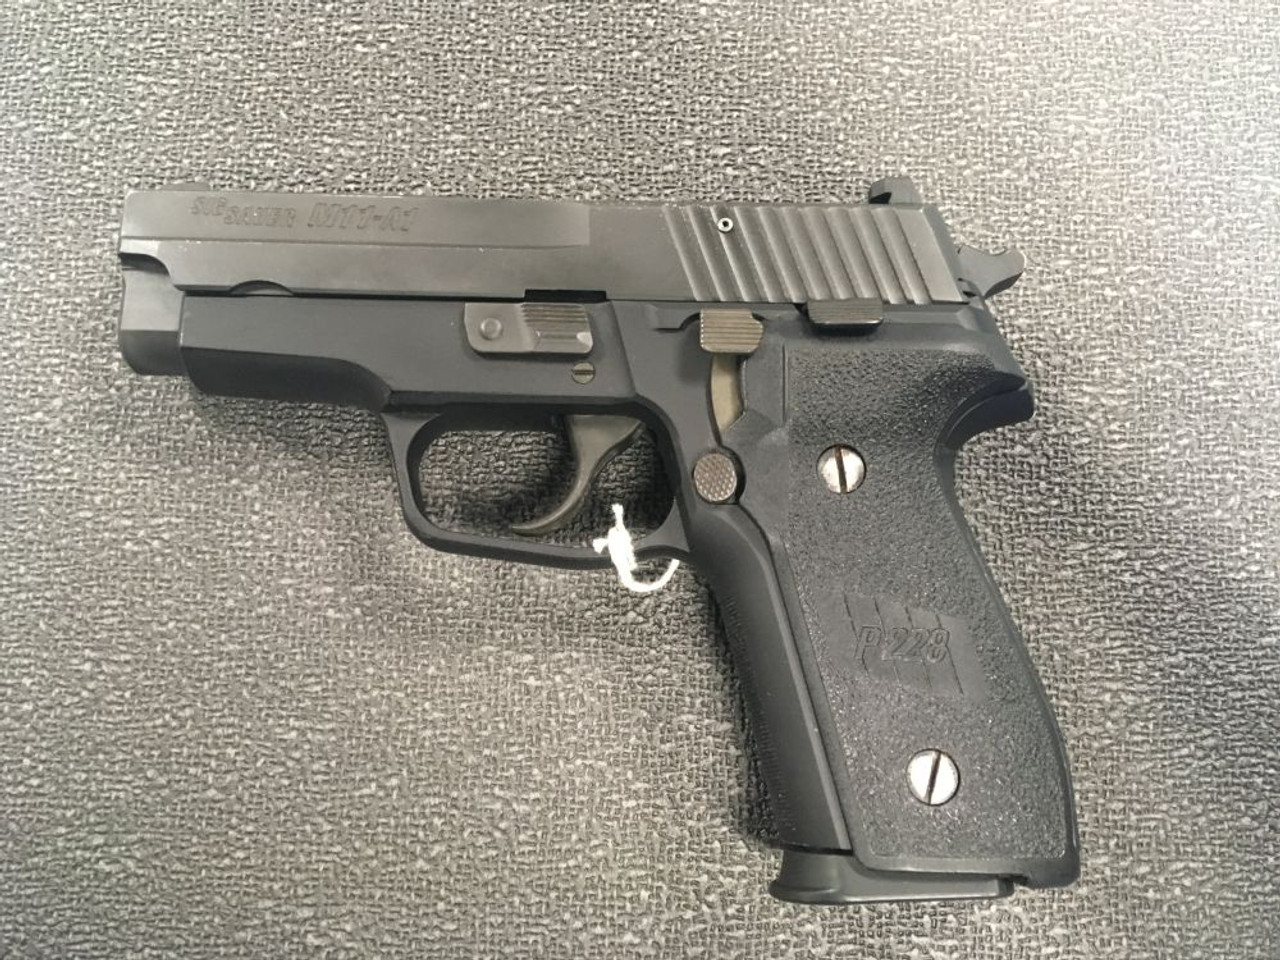 Sig Sauer M11-A1 - 9mm - used